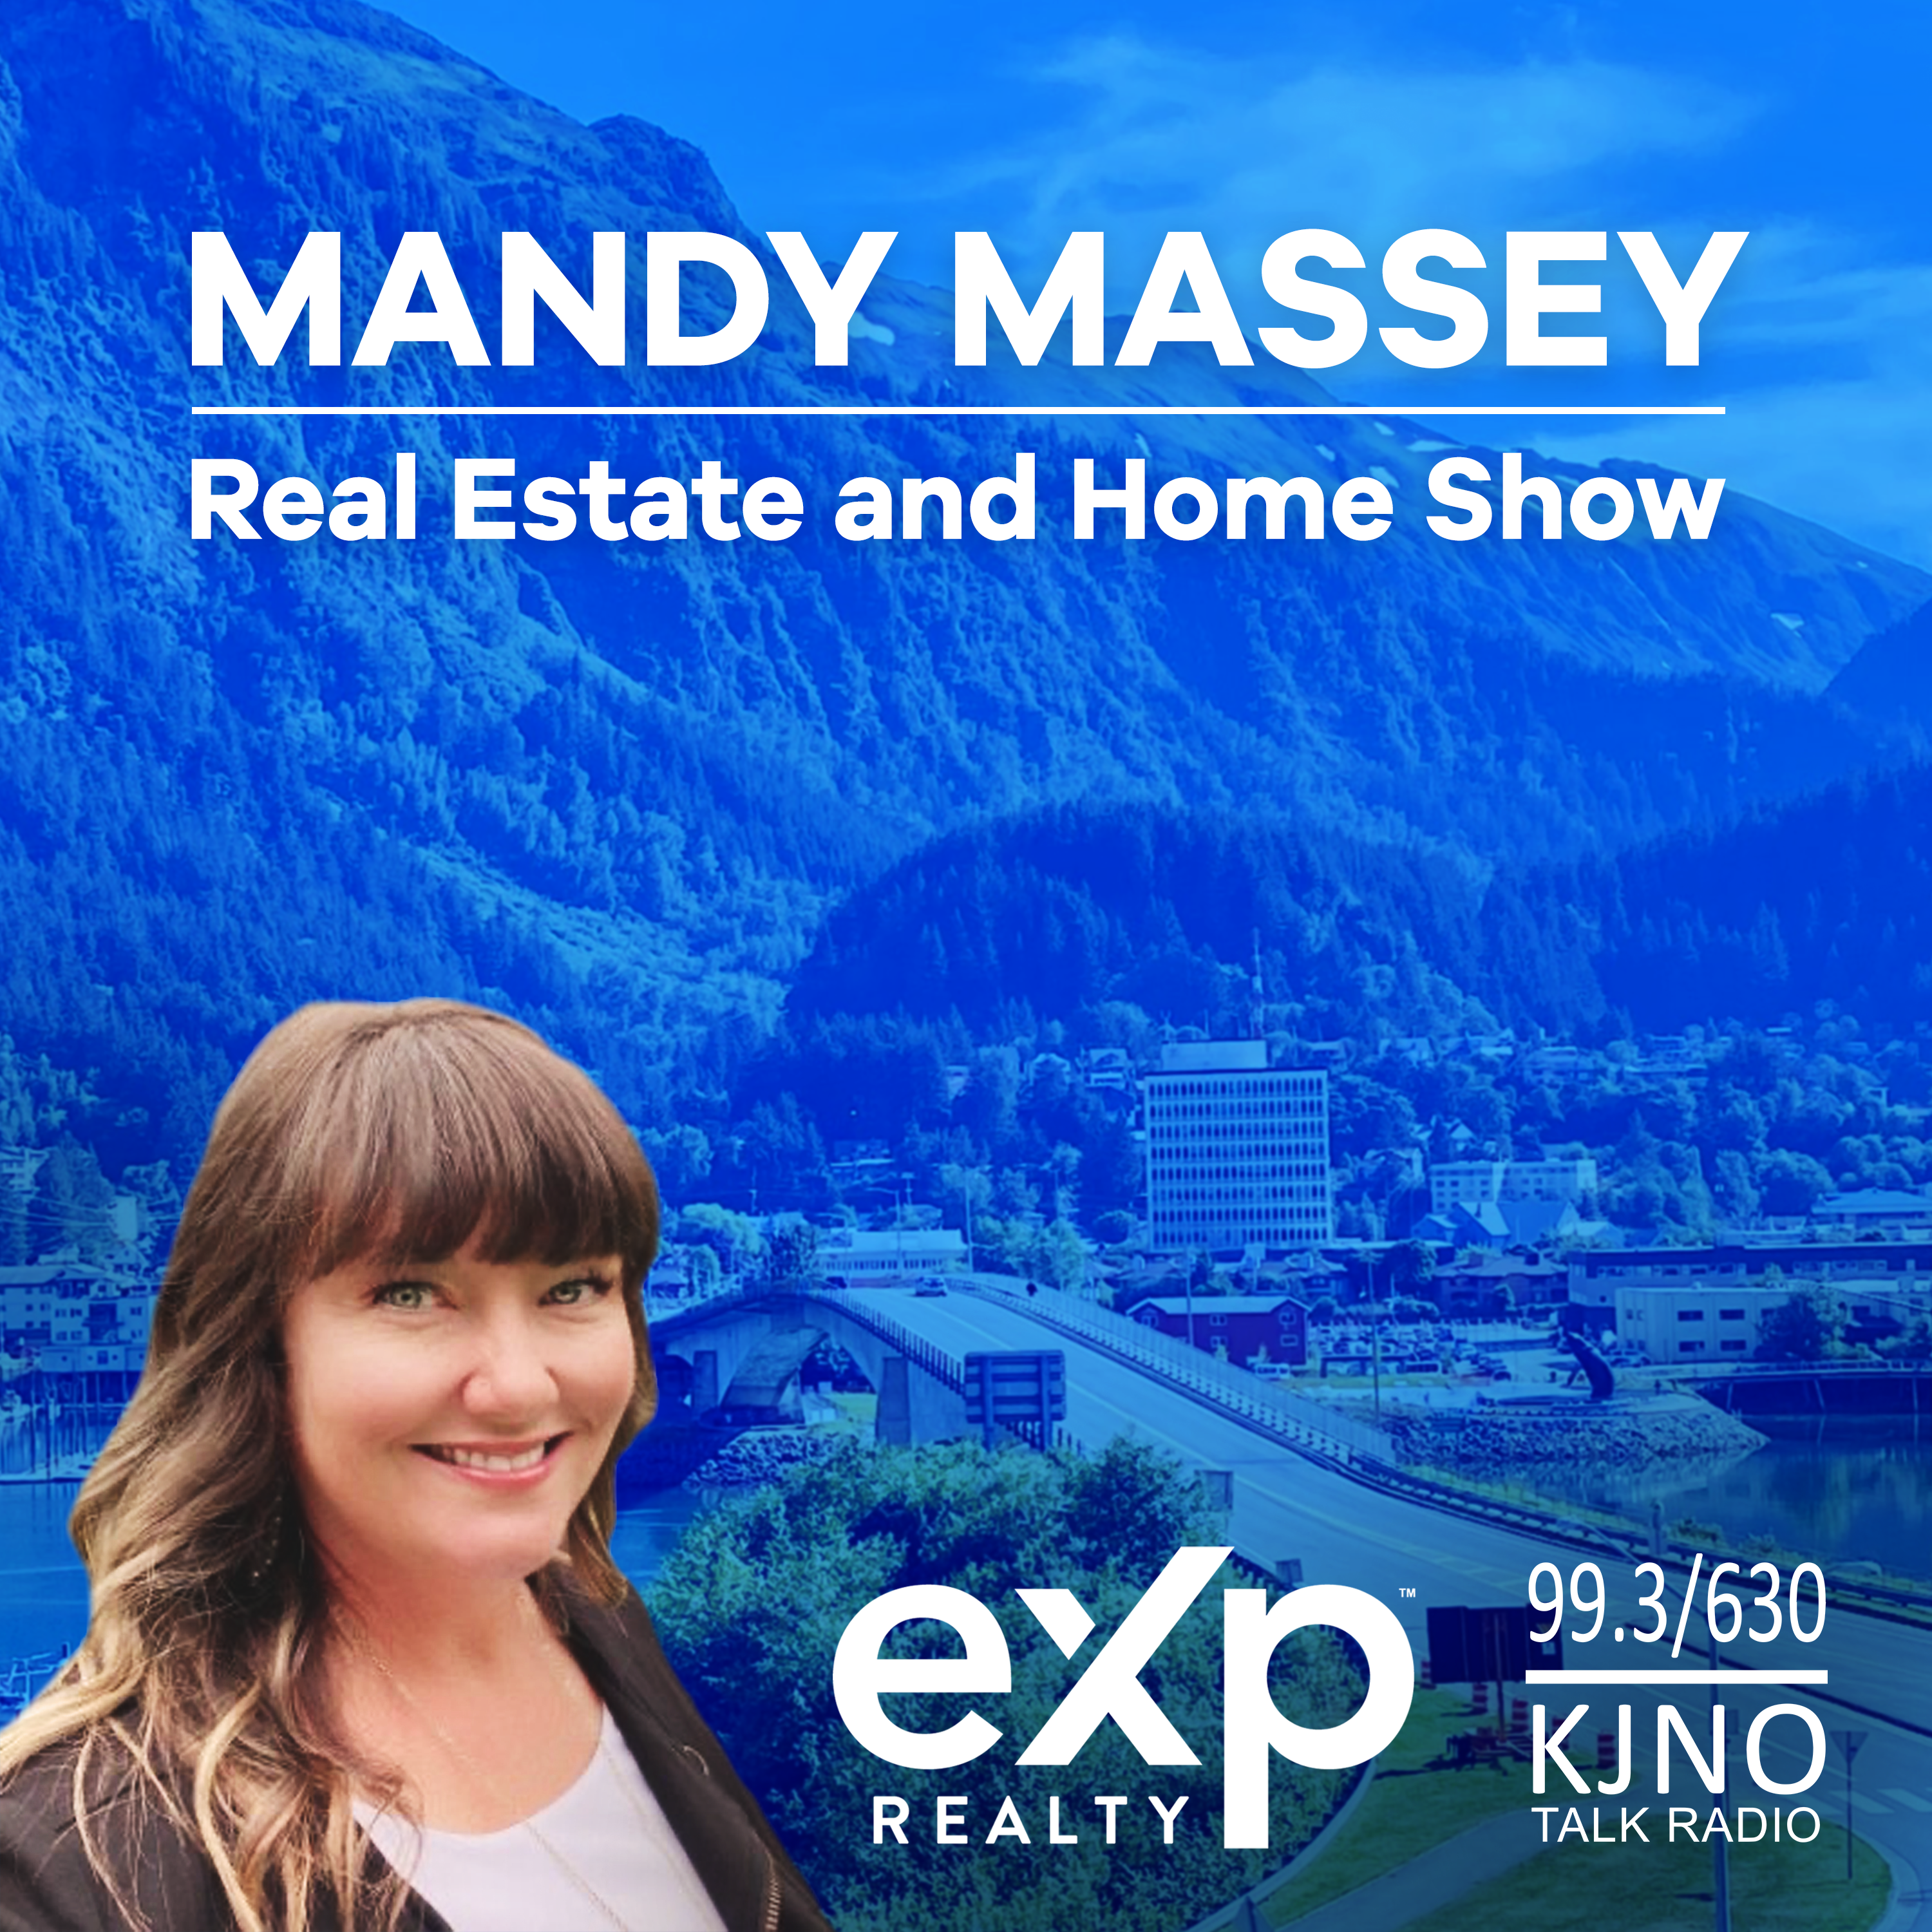 Mandy Massey Real Estate​ and Home Show